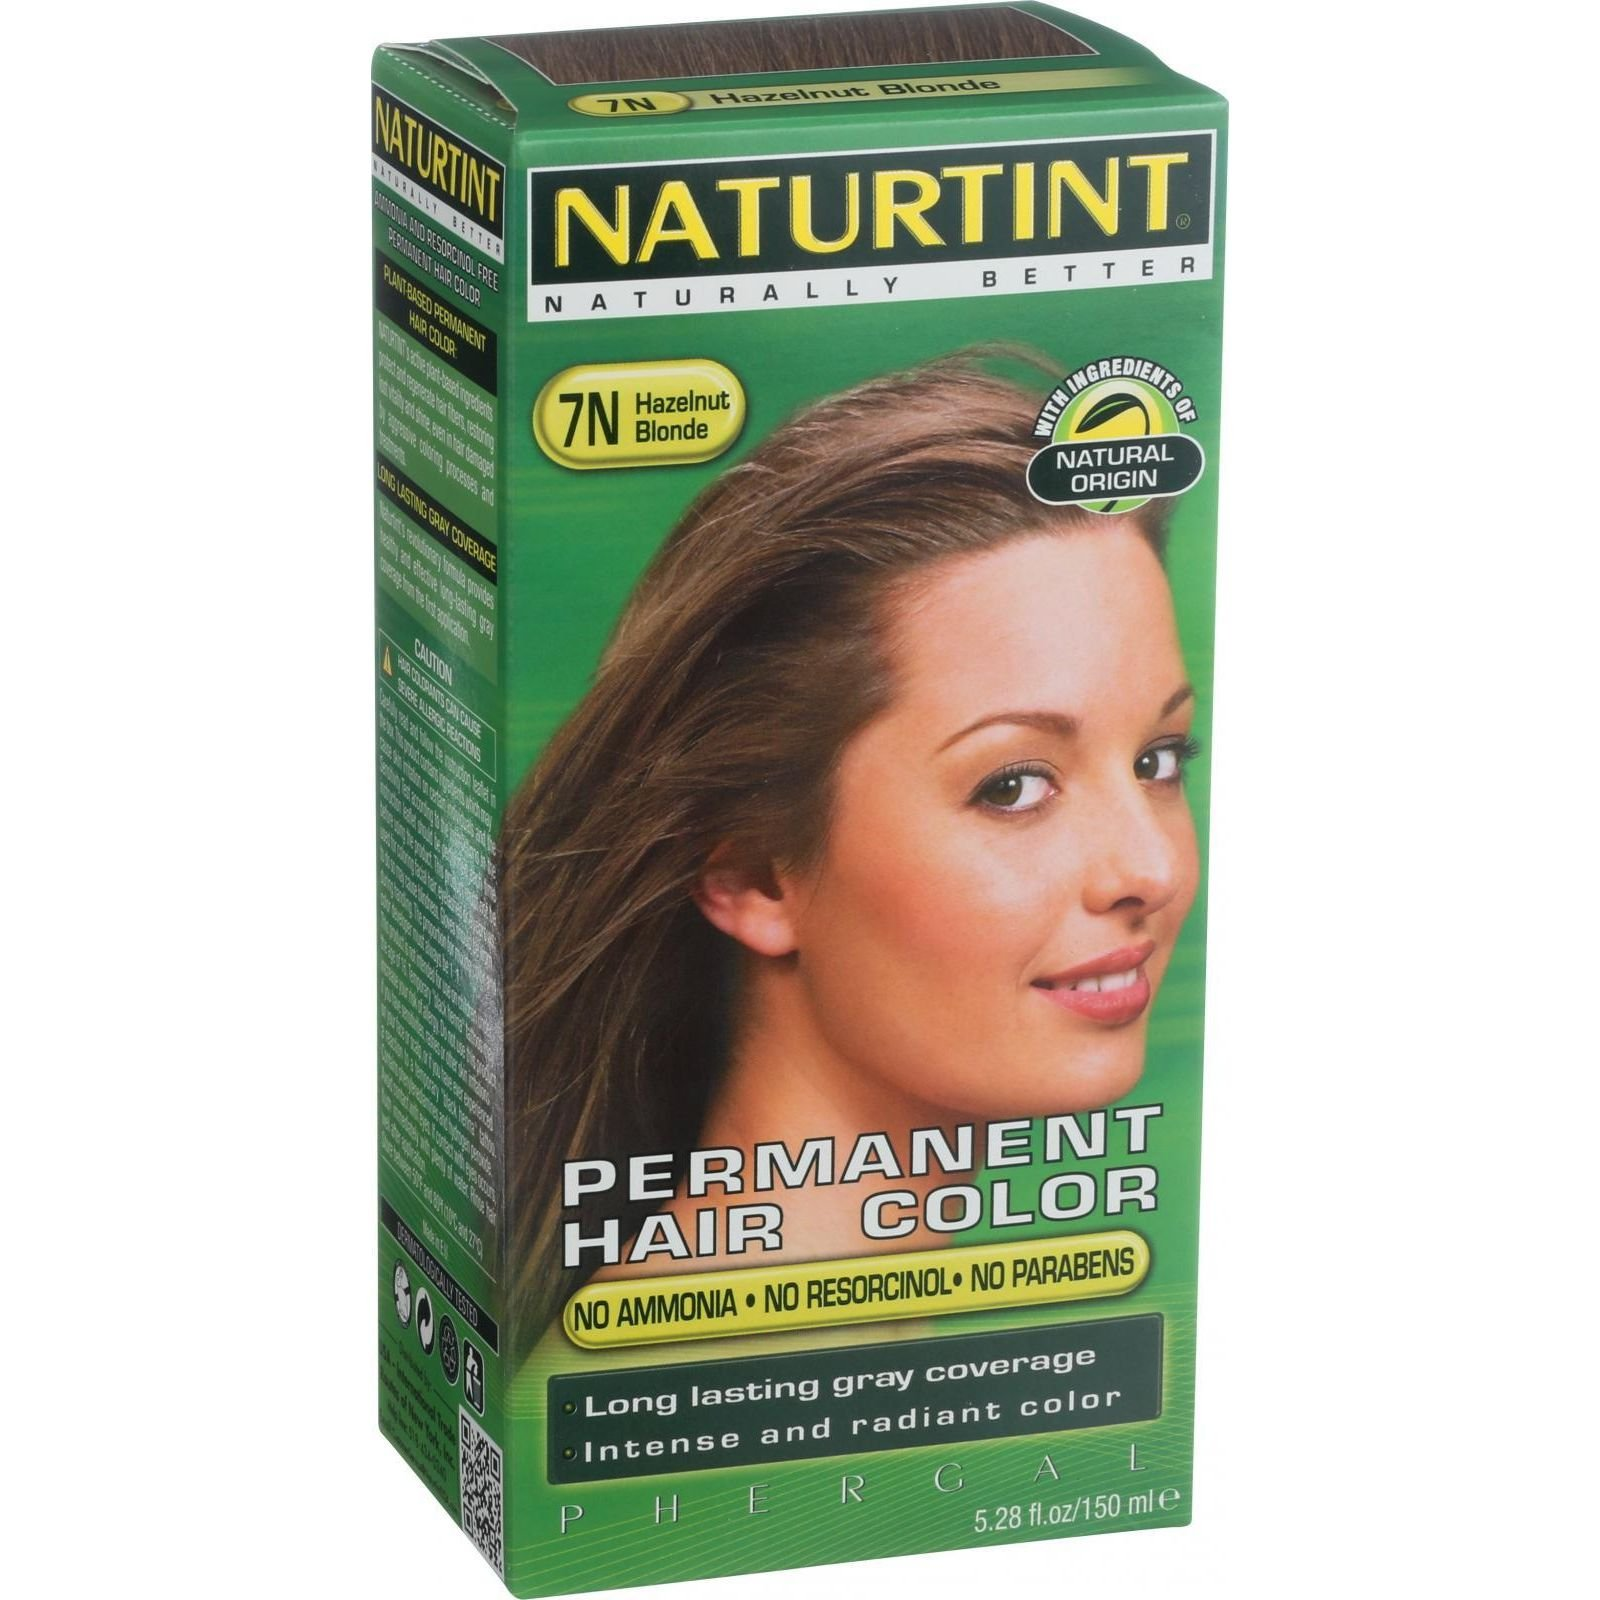 Naturtint Hair Color - Permanent - 7N - Hazelnut Blonde - 5.28 oz (Pack of 3) by Naturtint